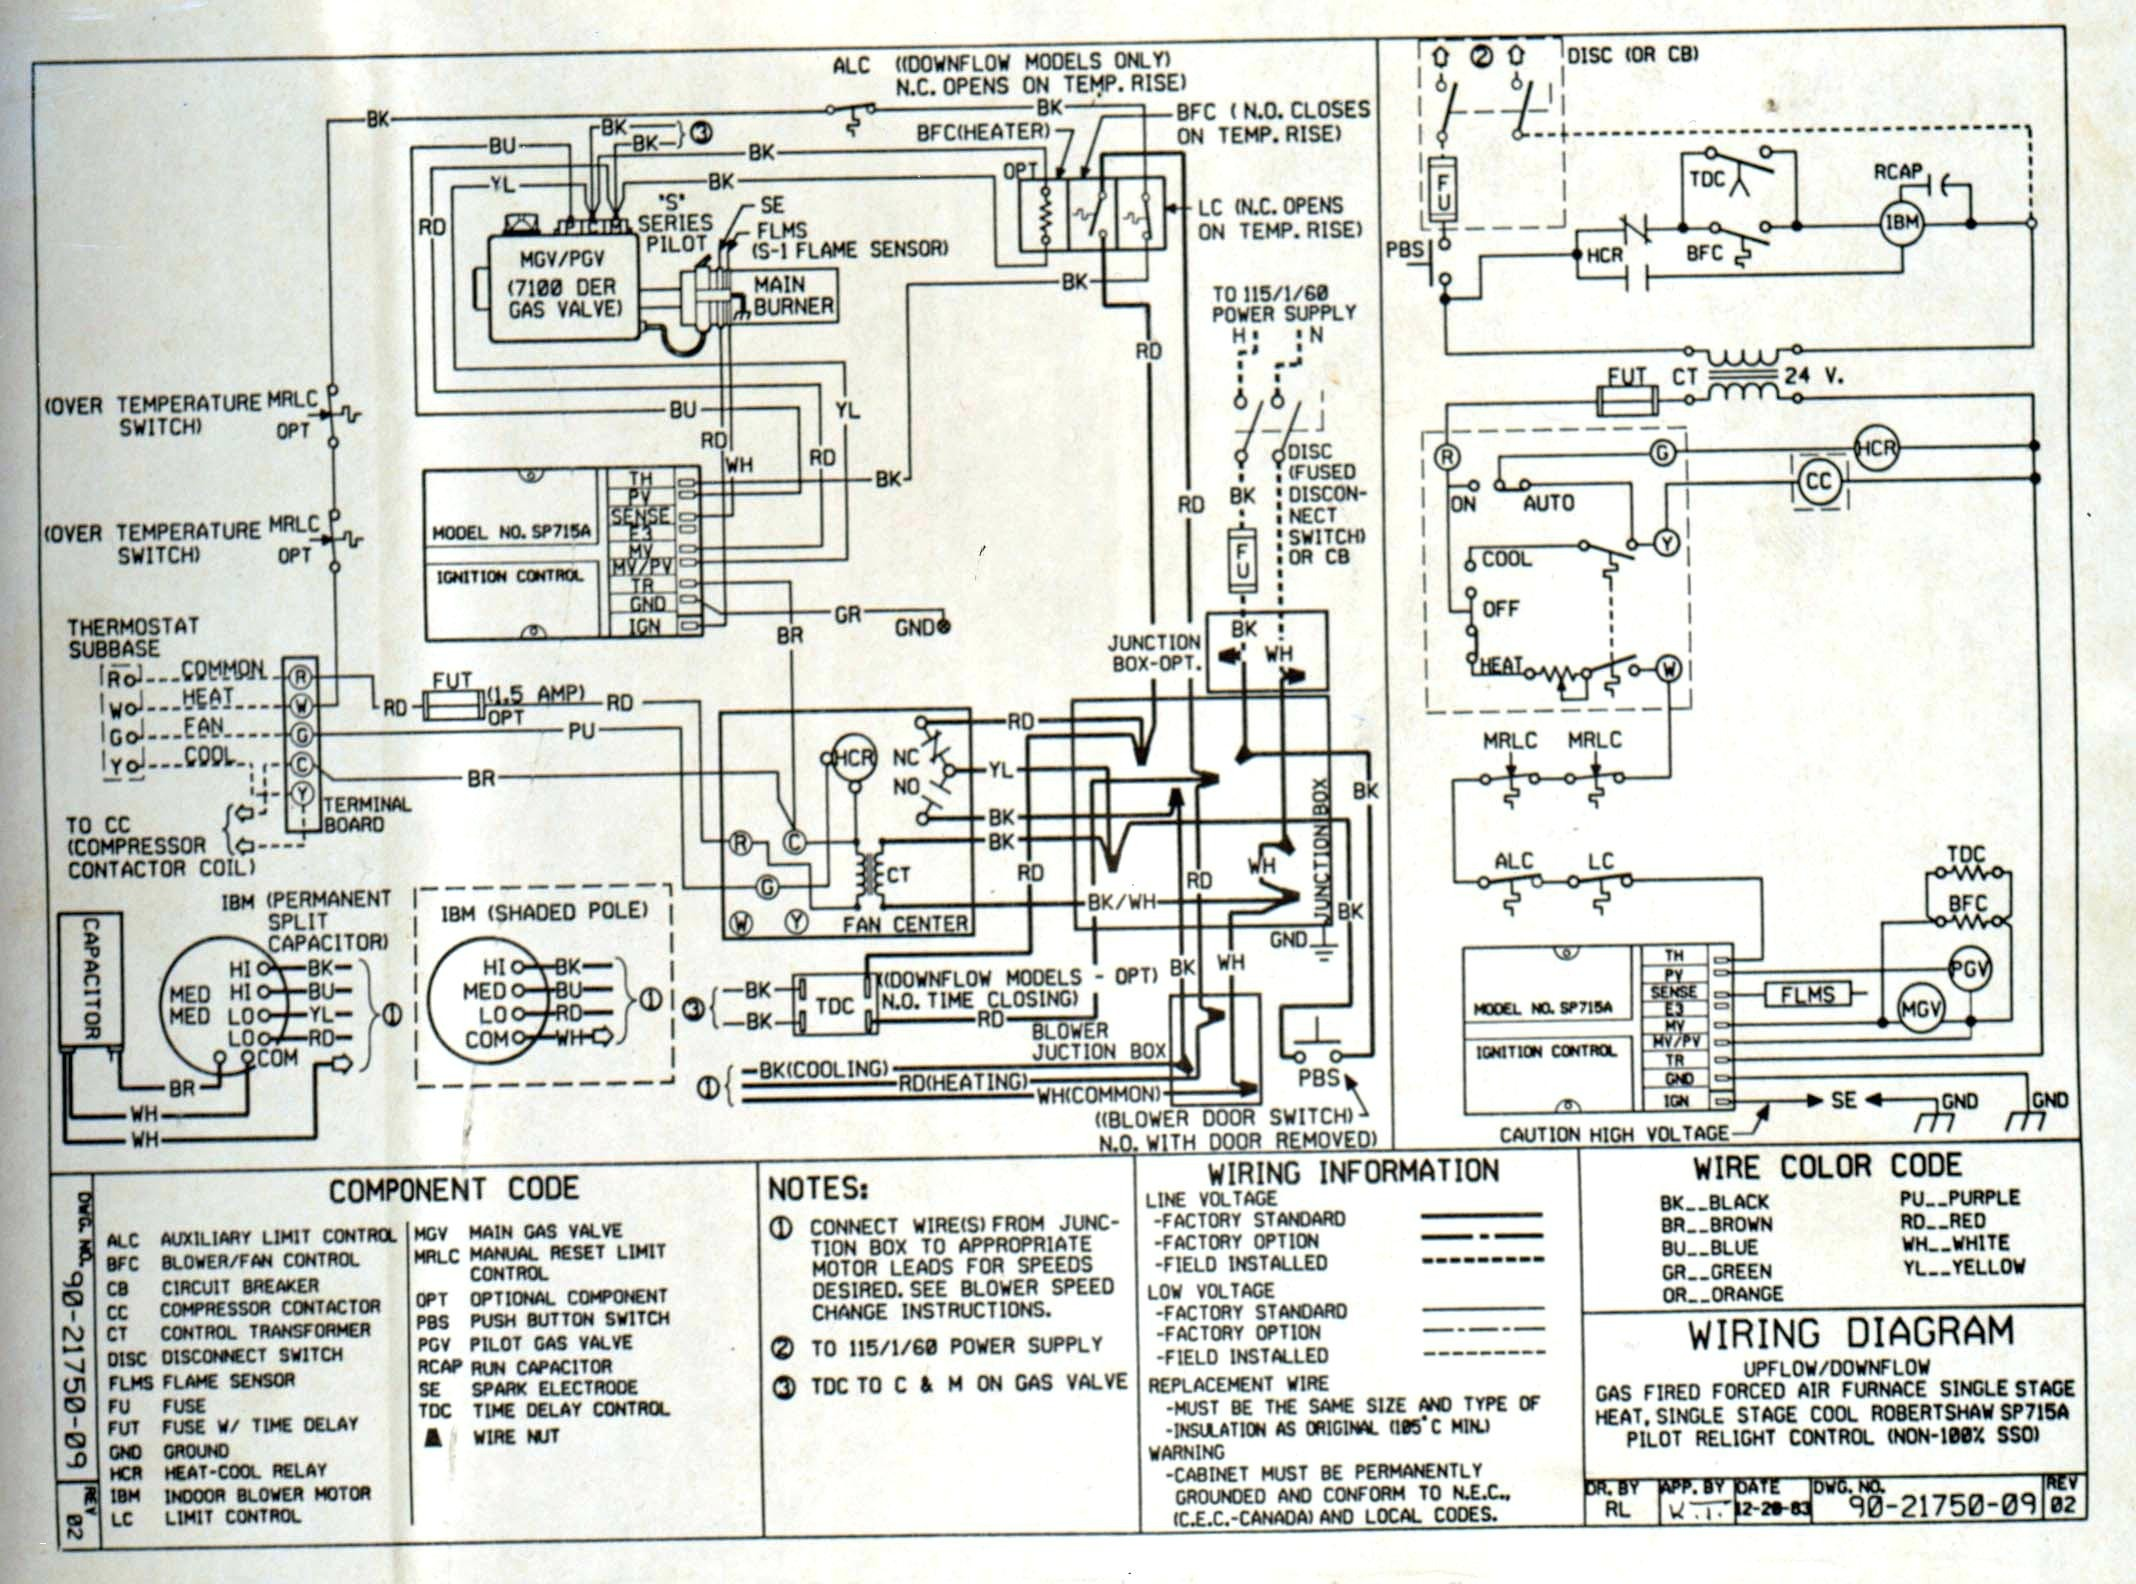 Goodman Heat Pump Wiring Diagram Goodman Air Handler Wiring Diagram Unique Wiring Diagram Goodman Of Goodman Heat Pump Wiring Diagram Goodman Air Handler Wiring Diagram New Electric Heat Wiring Diagram